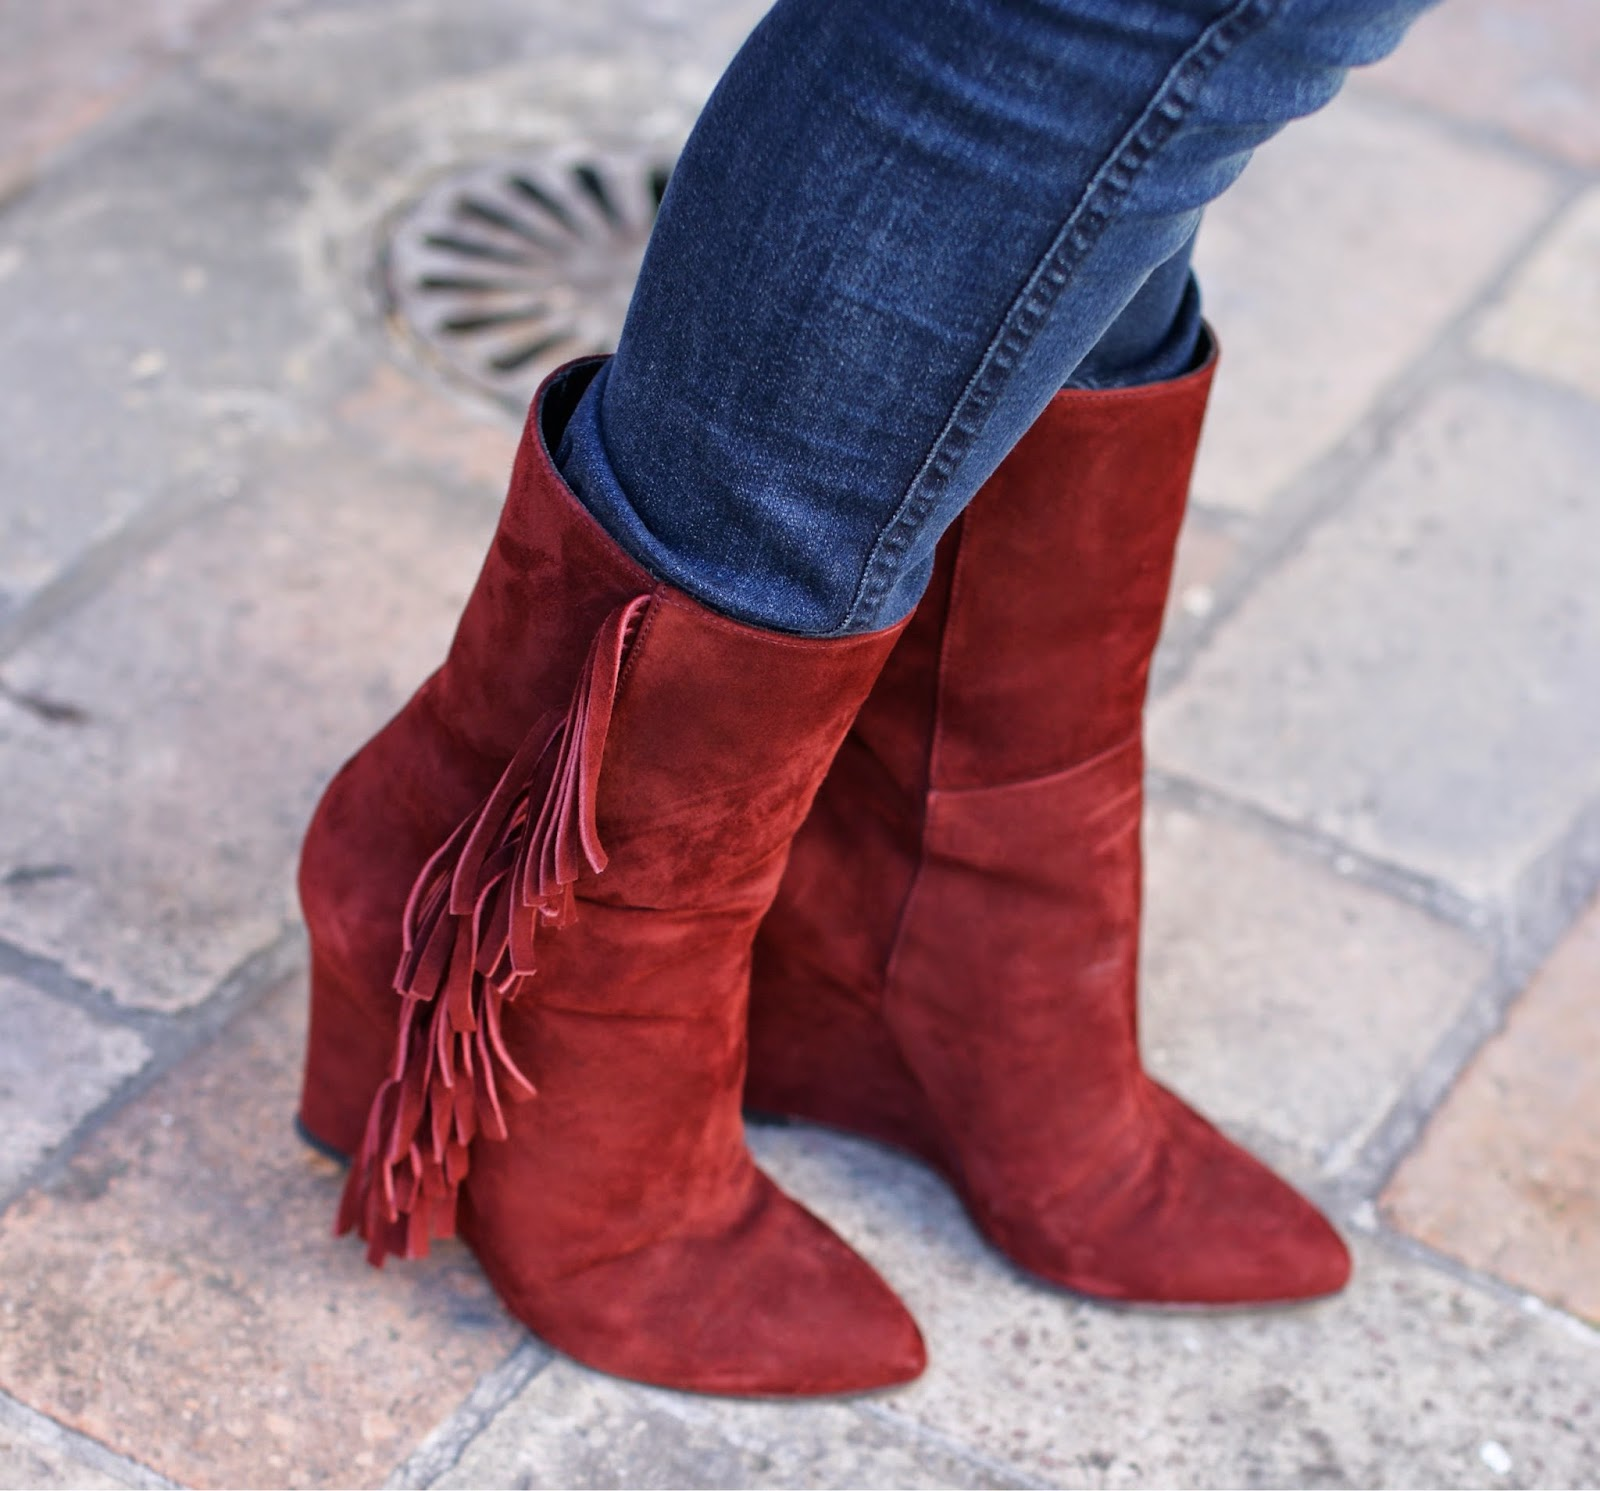 suede fringed boots, gaia d'este stivali, Fashion and Cookies, fashion blogger